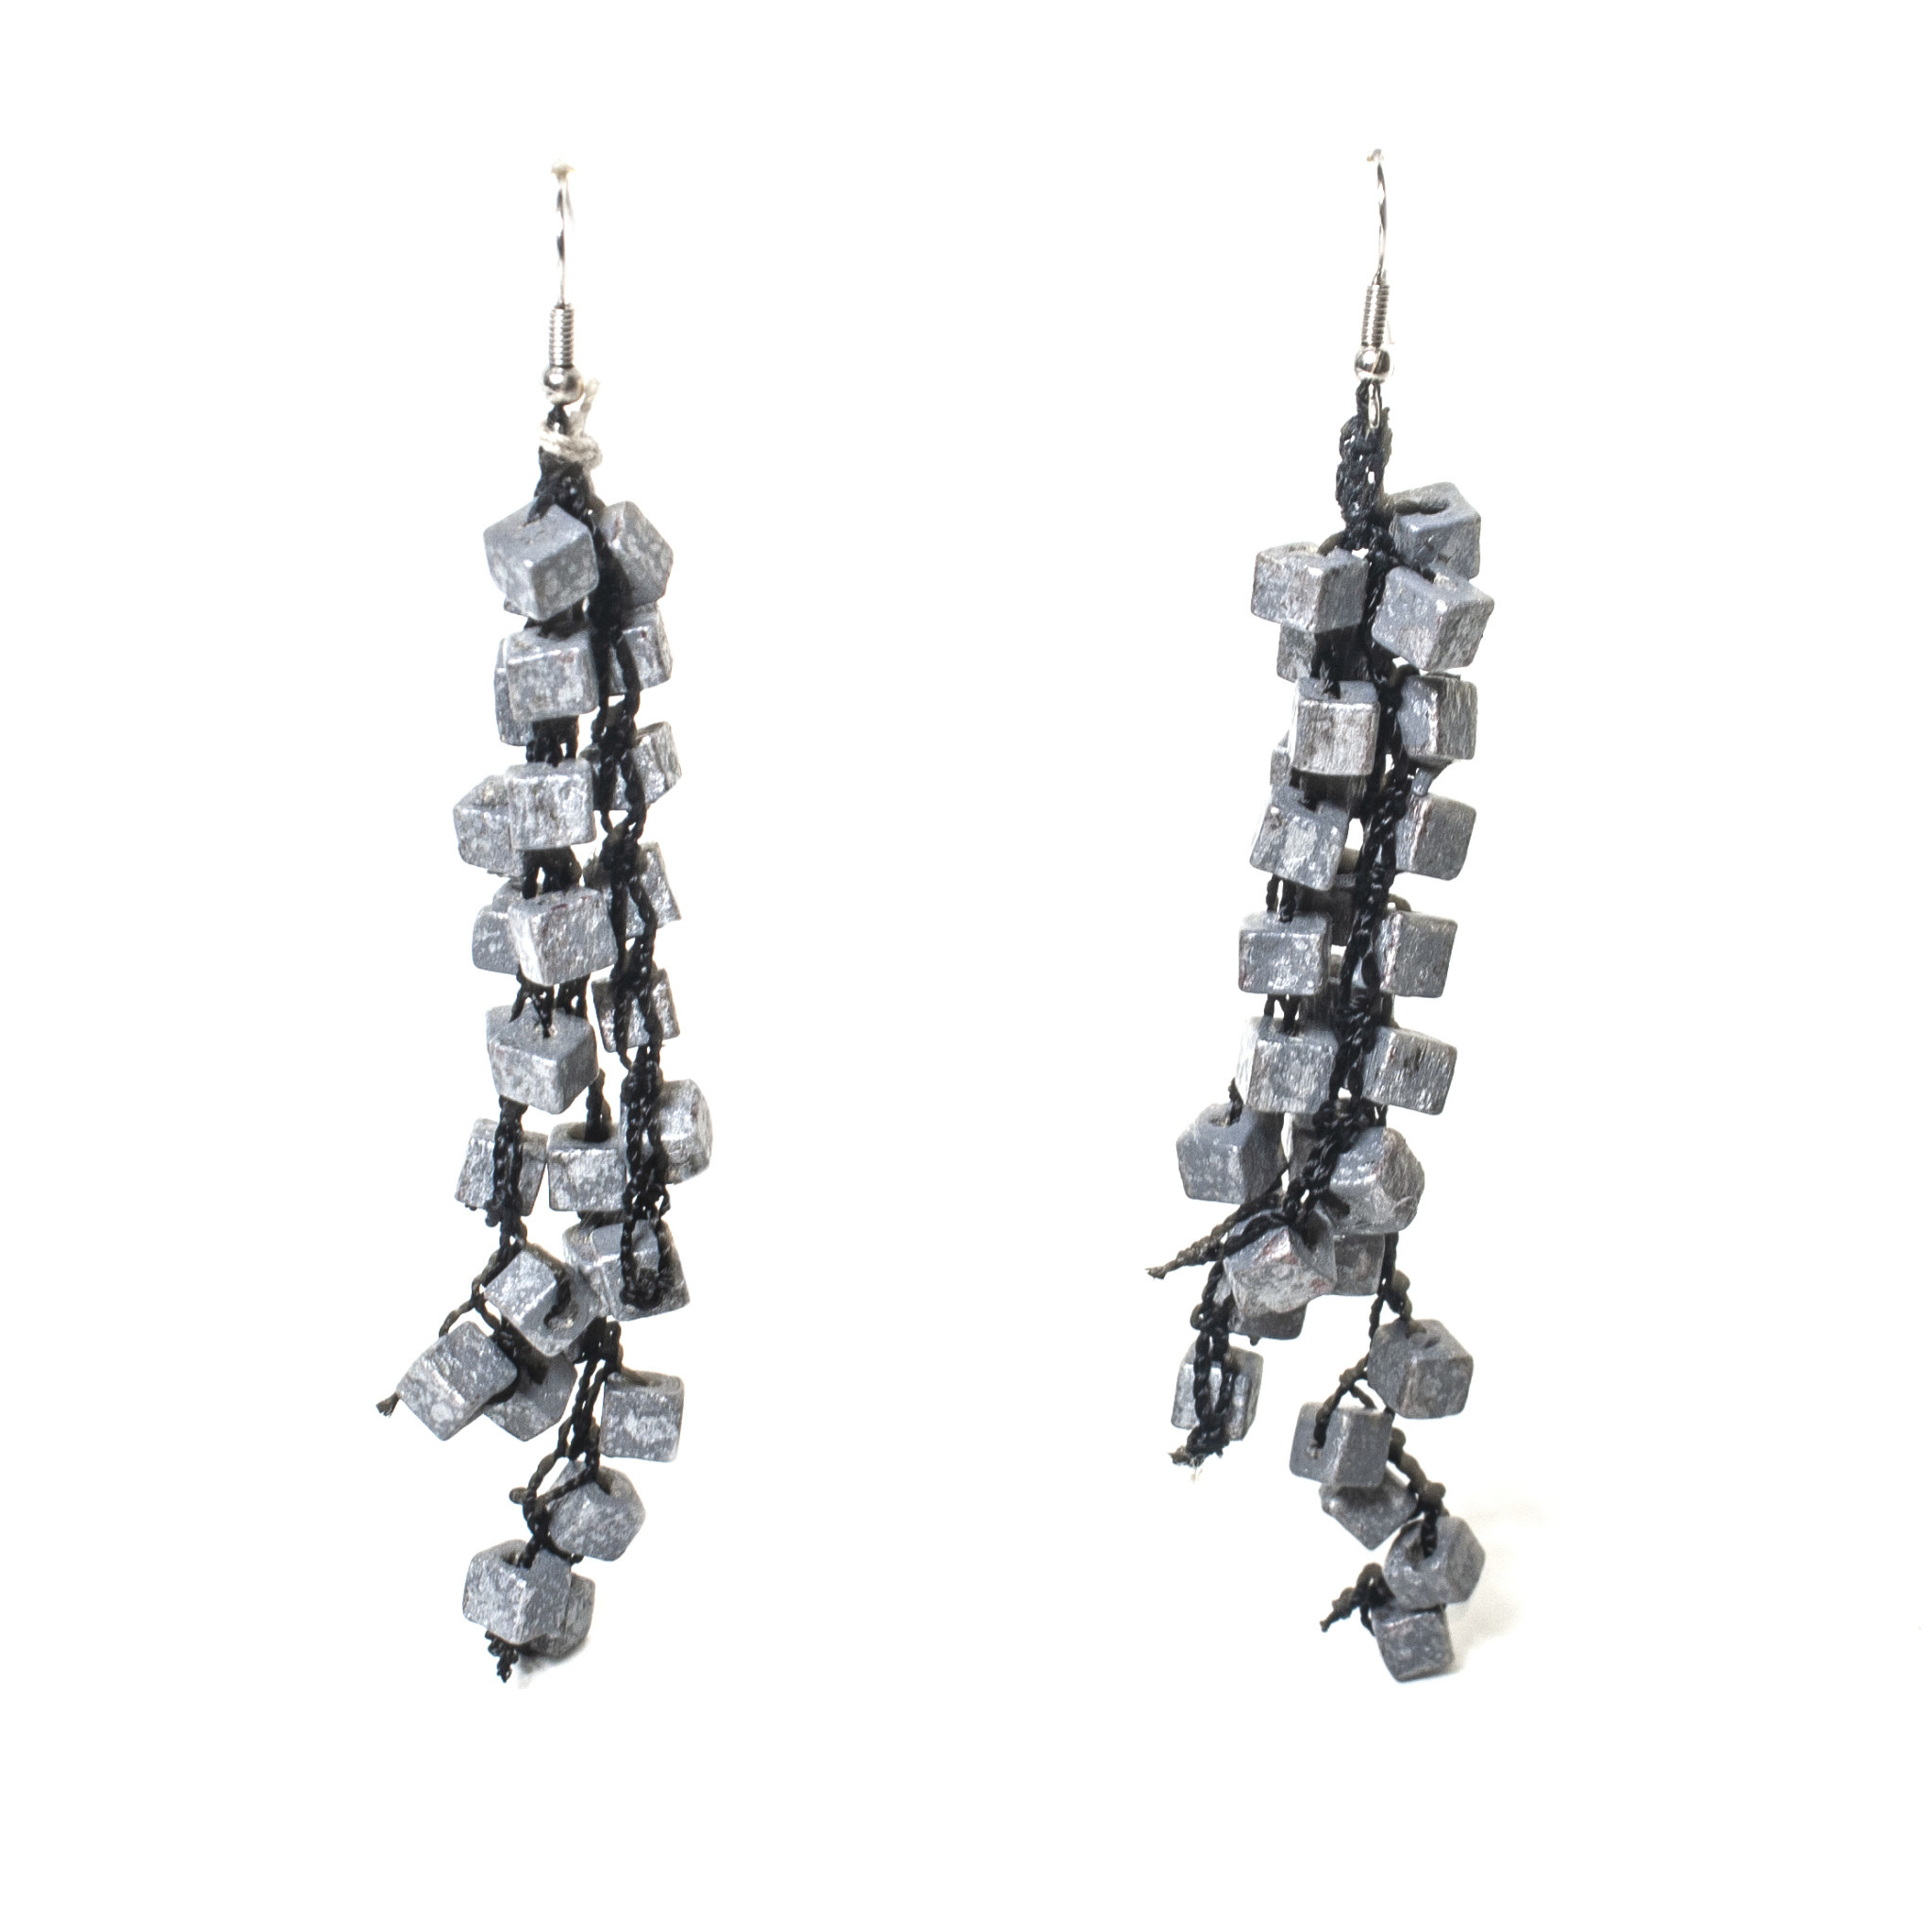 Jianhui Jianhui Crocheted Crystal Earrings